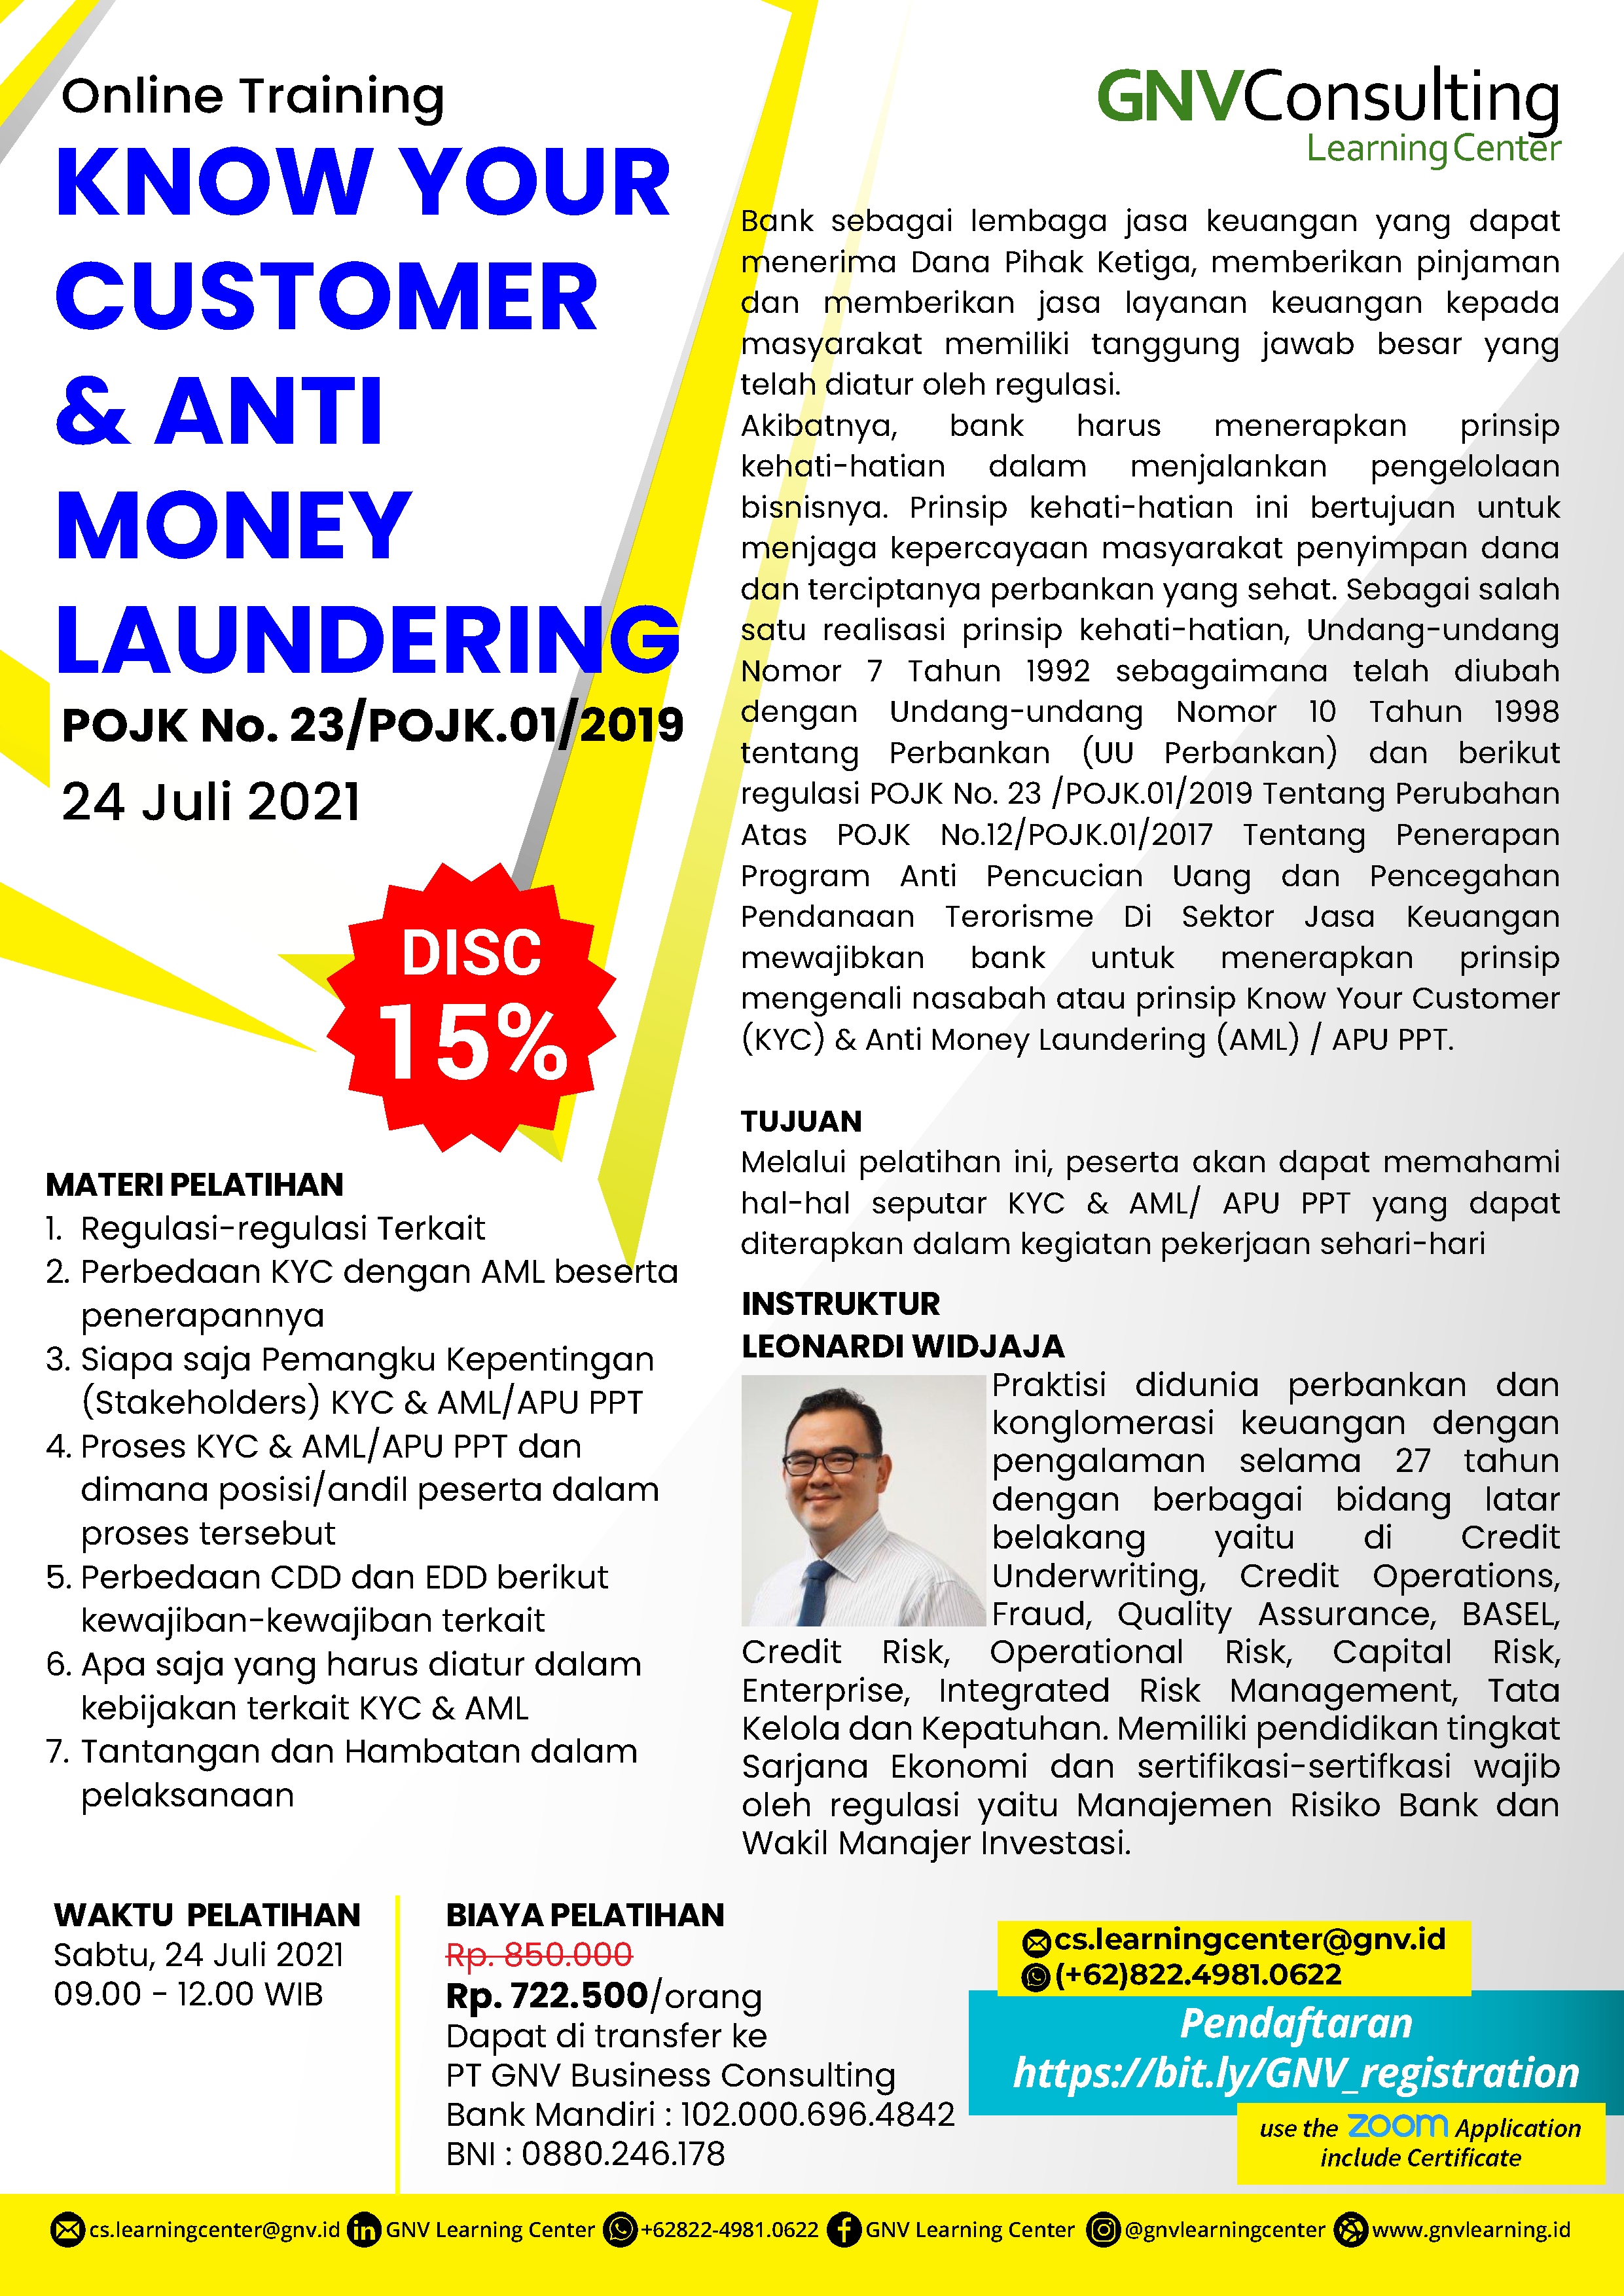 Know Your Customer & Anti Money Laundering – Online Training